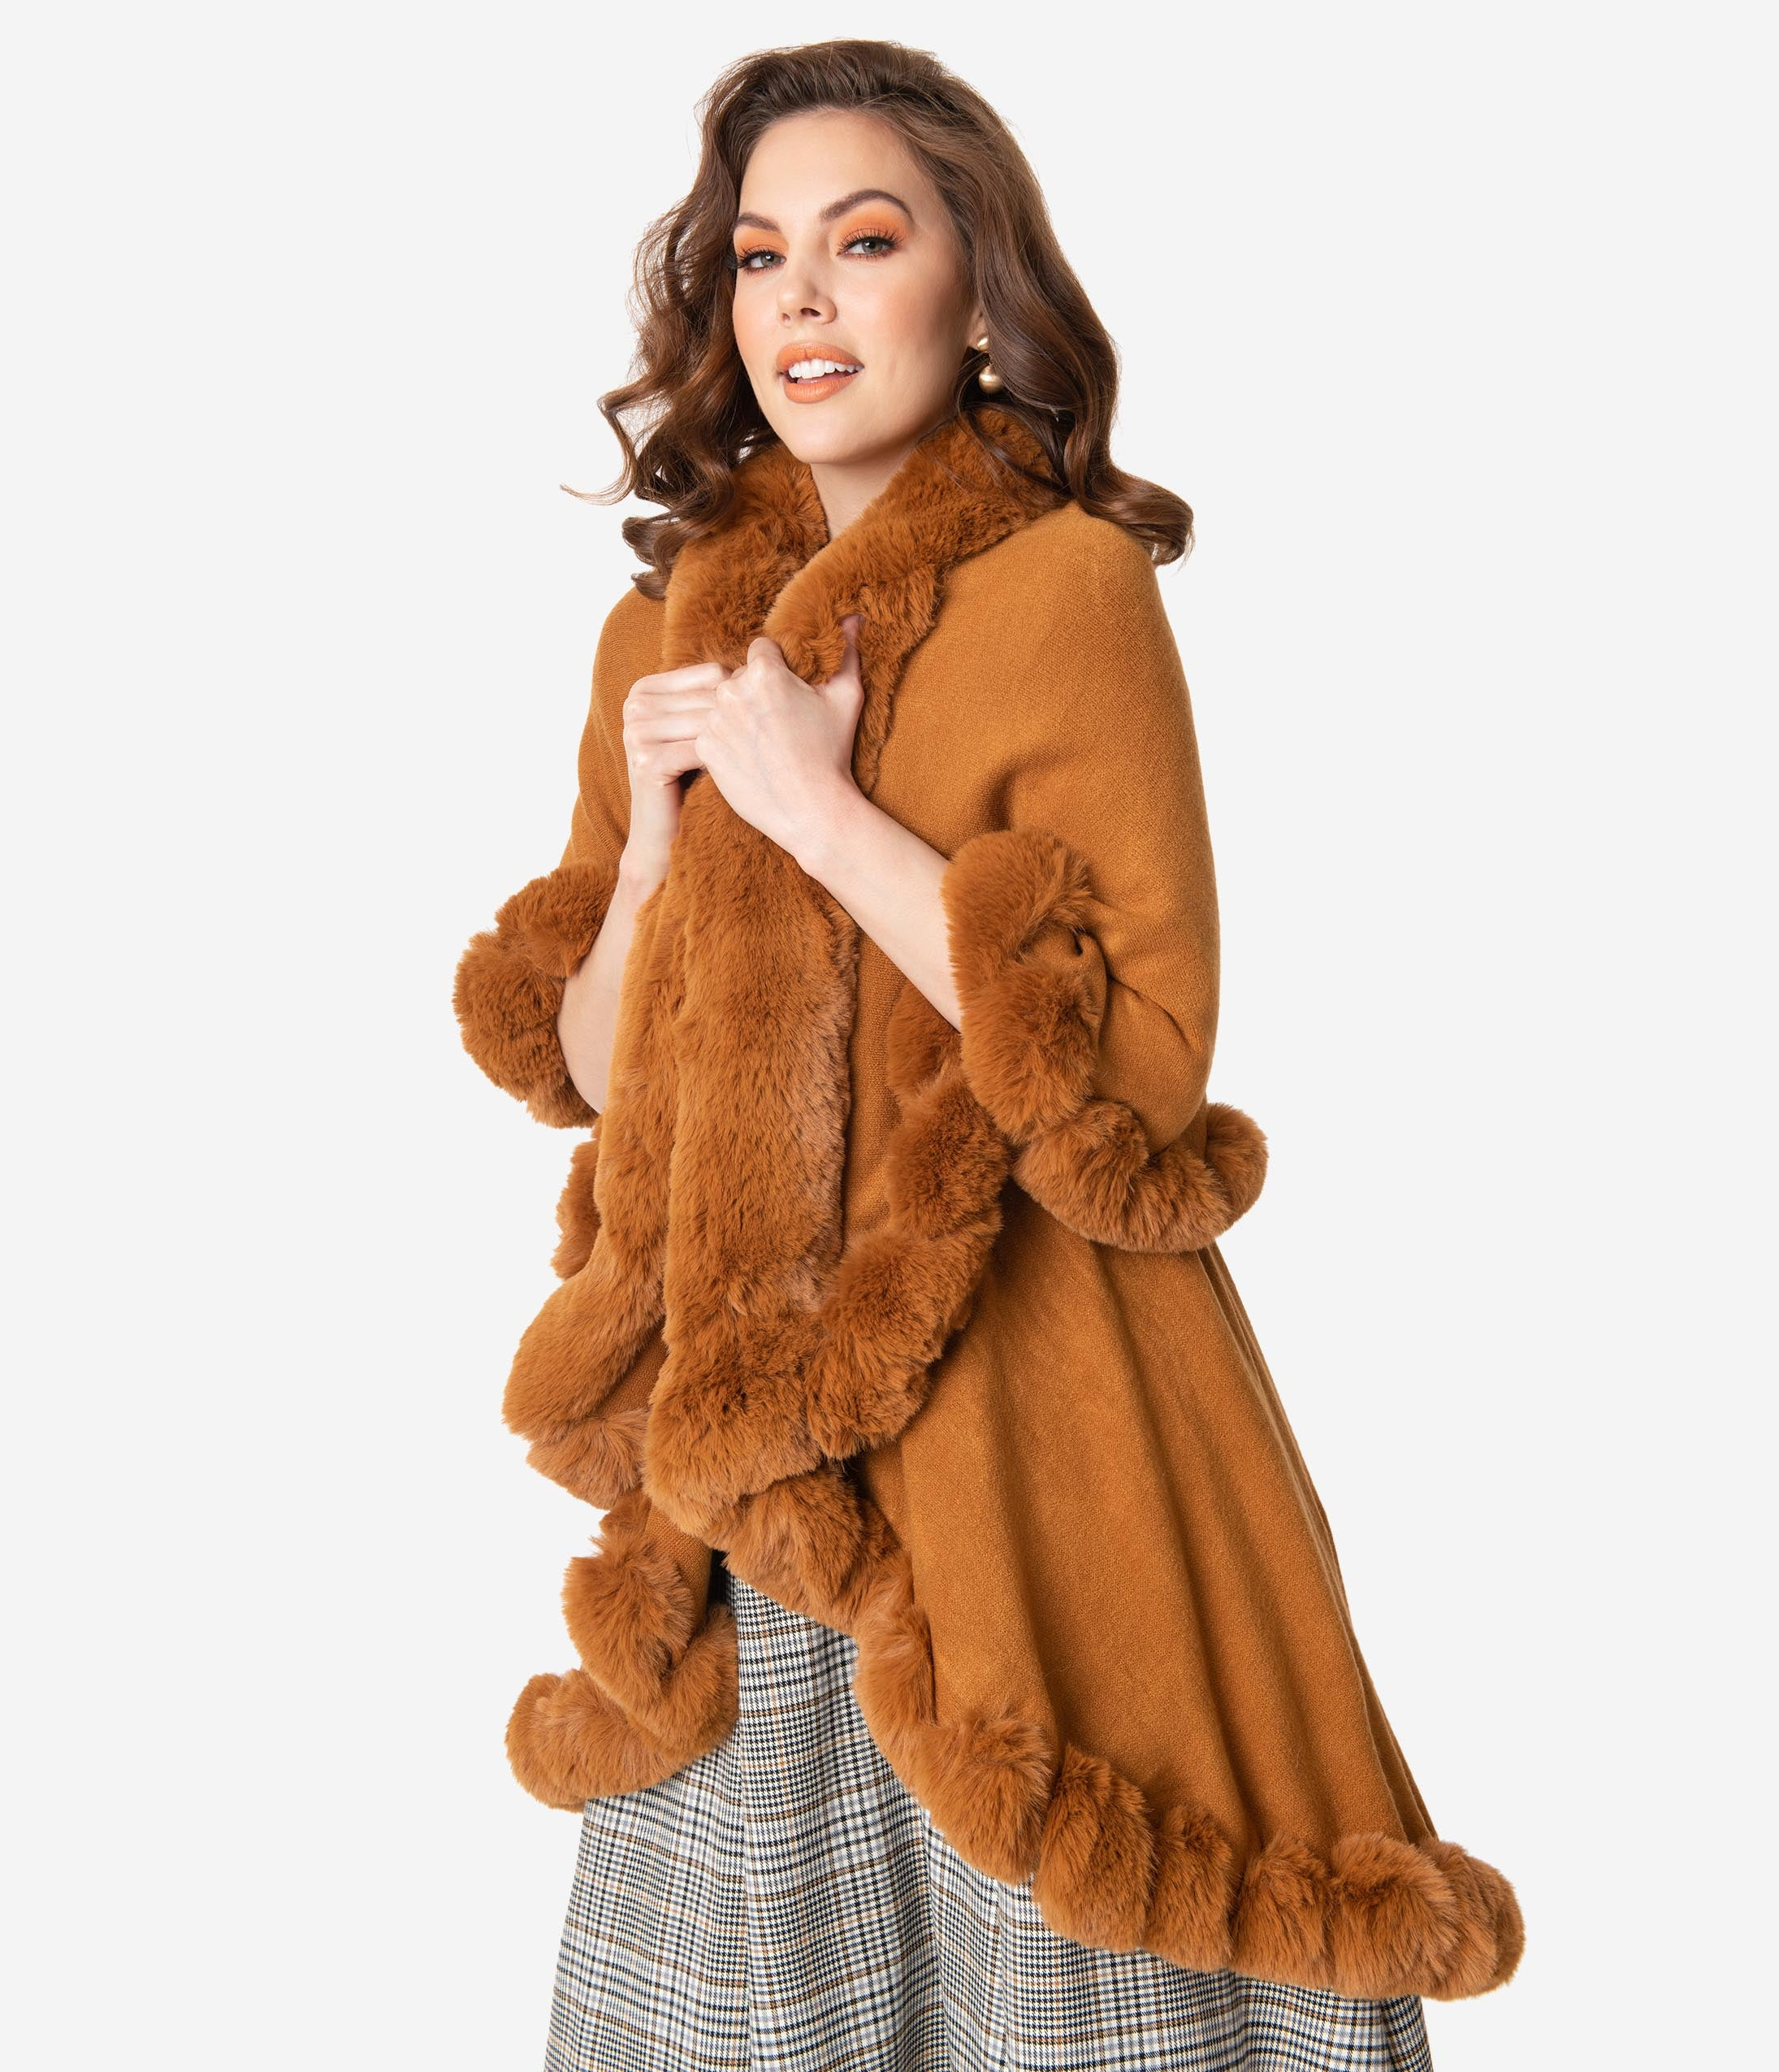 Victorian Capelet, Cape, Cloak, Shawl, Muff Vintage Style Camel Brown Faux Fur Trimmed Shawl $78.00 AT vintagedancer.com